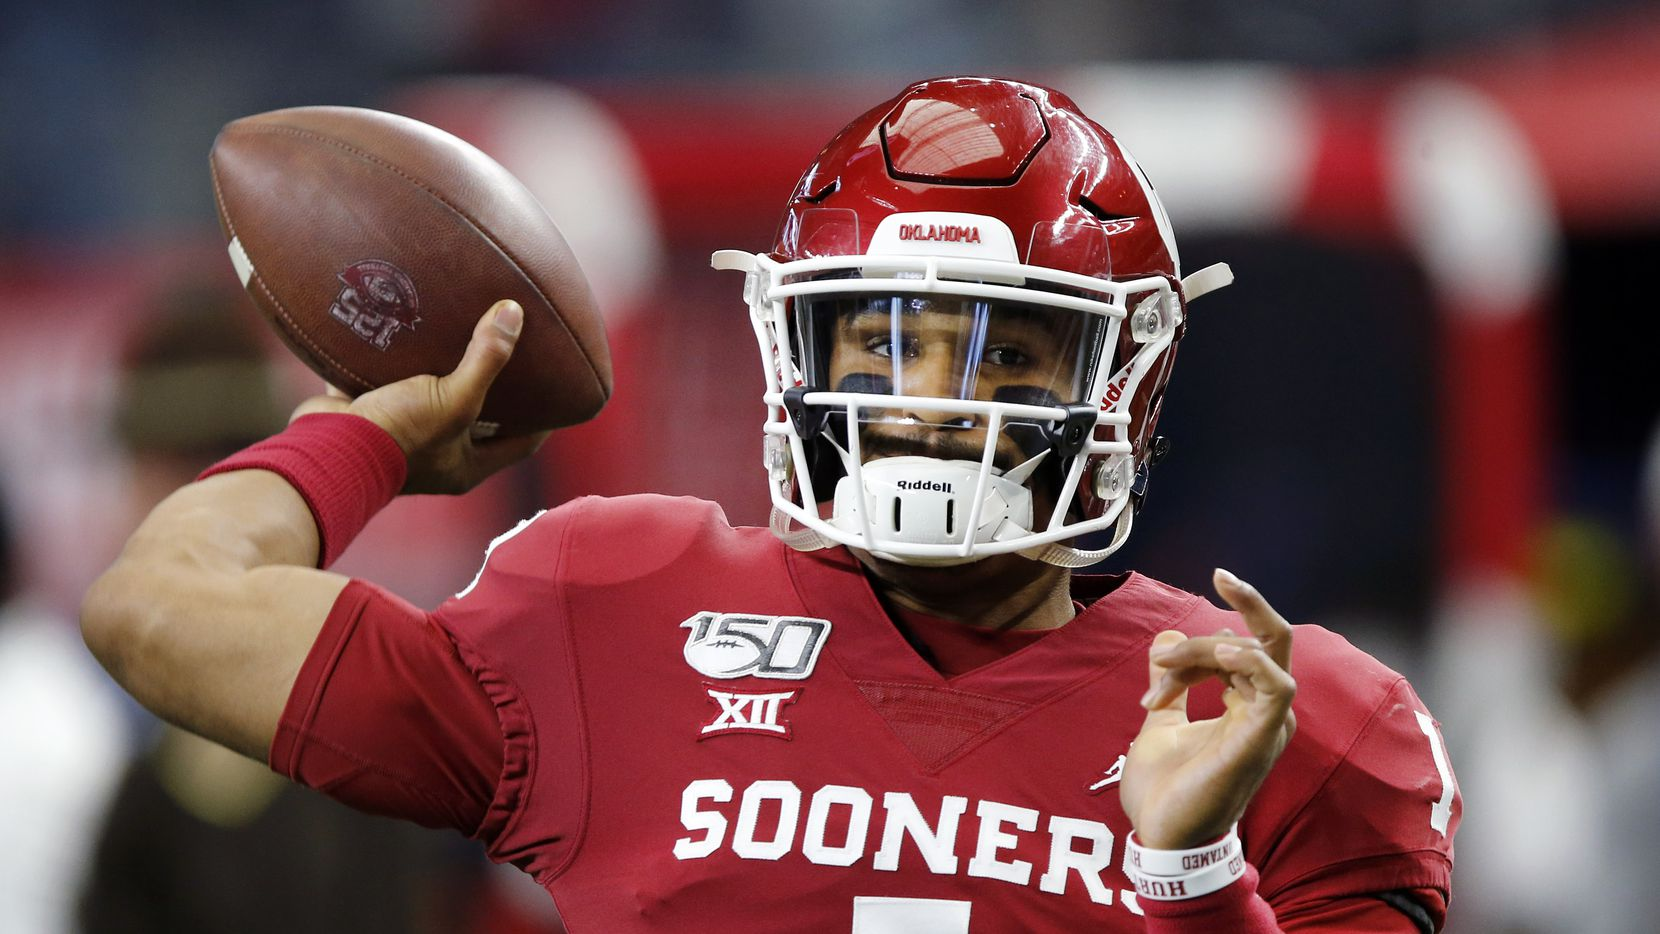 Oklahoma Sooners quarterback Jalen Hurts (1)  warms up his arm before facing the Baylor Bears in the Big 12 Championship at AT&T Stadium in Arlington, Saturday, December 7, 2019.